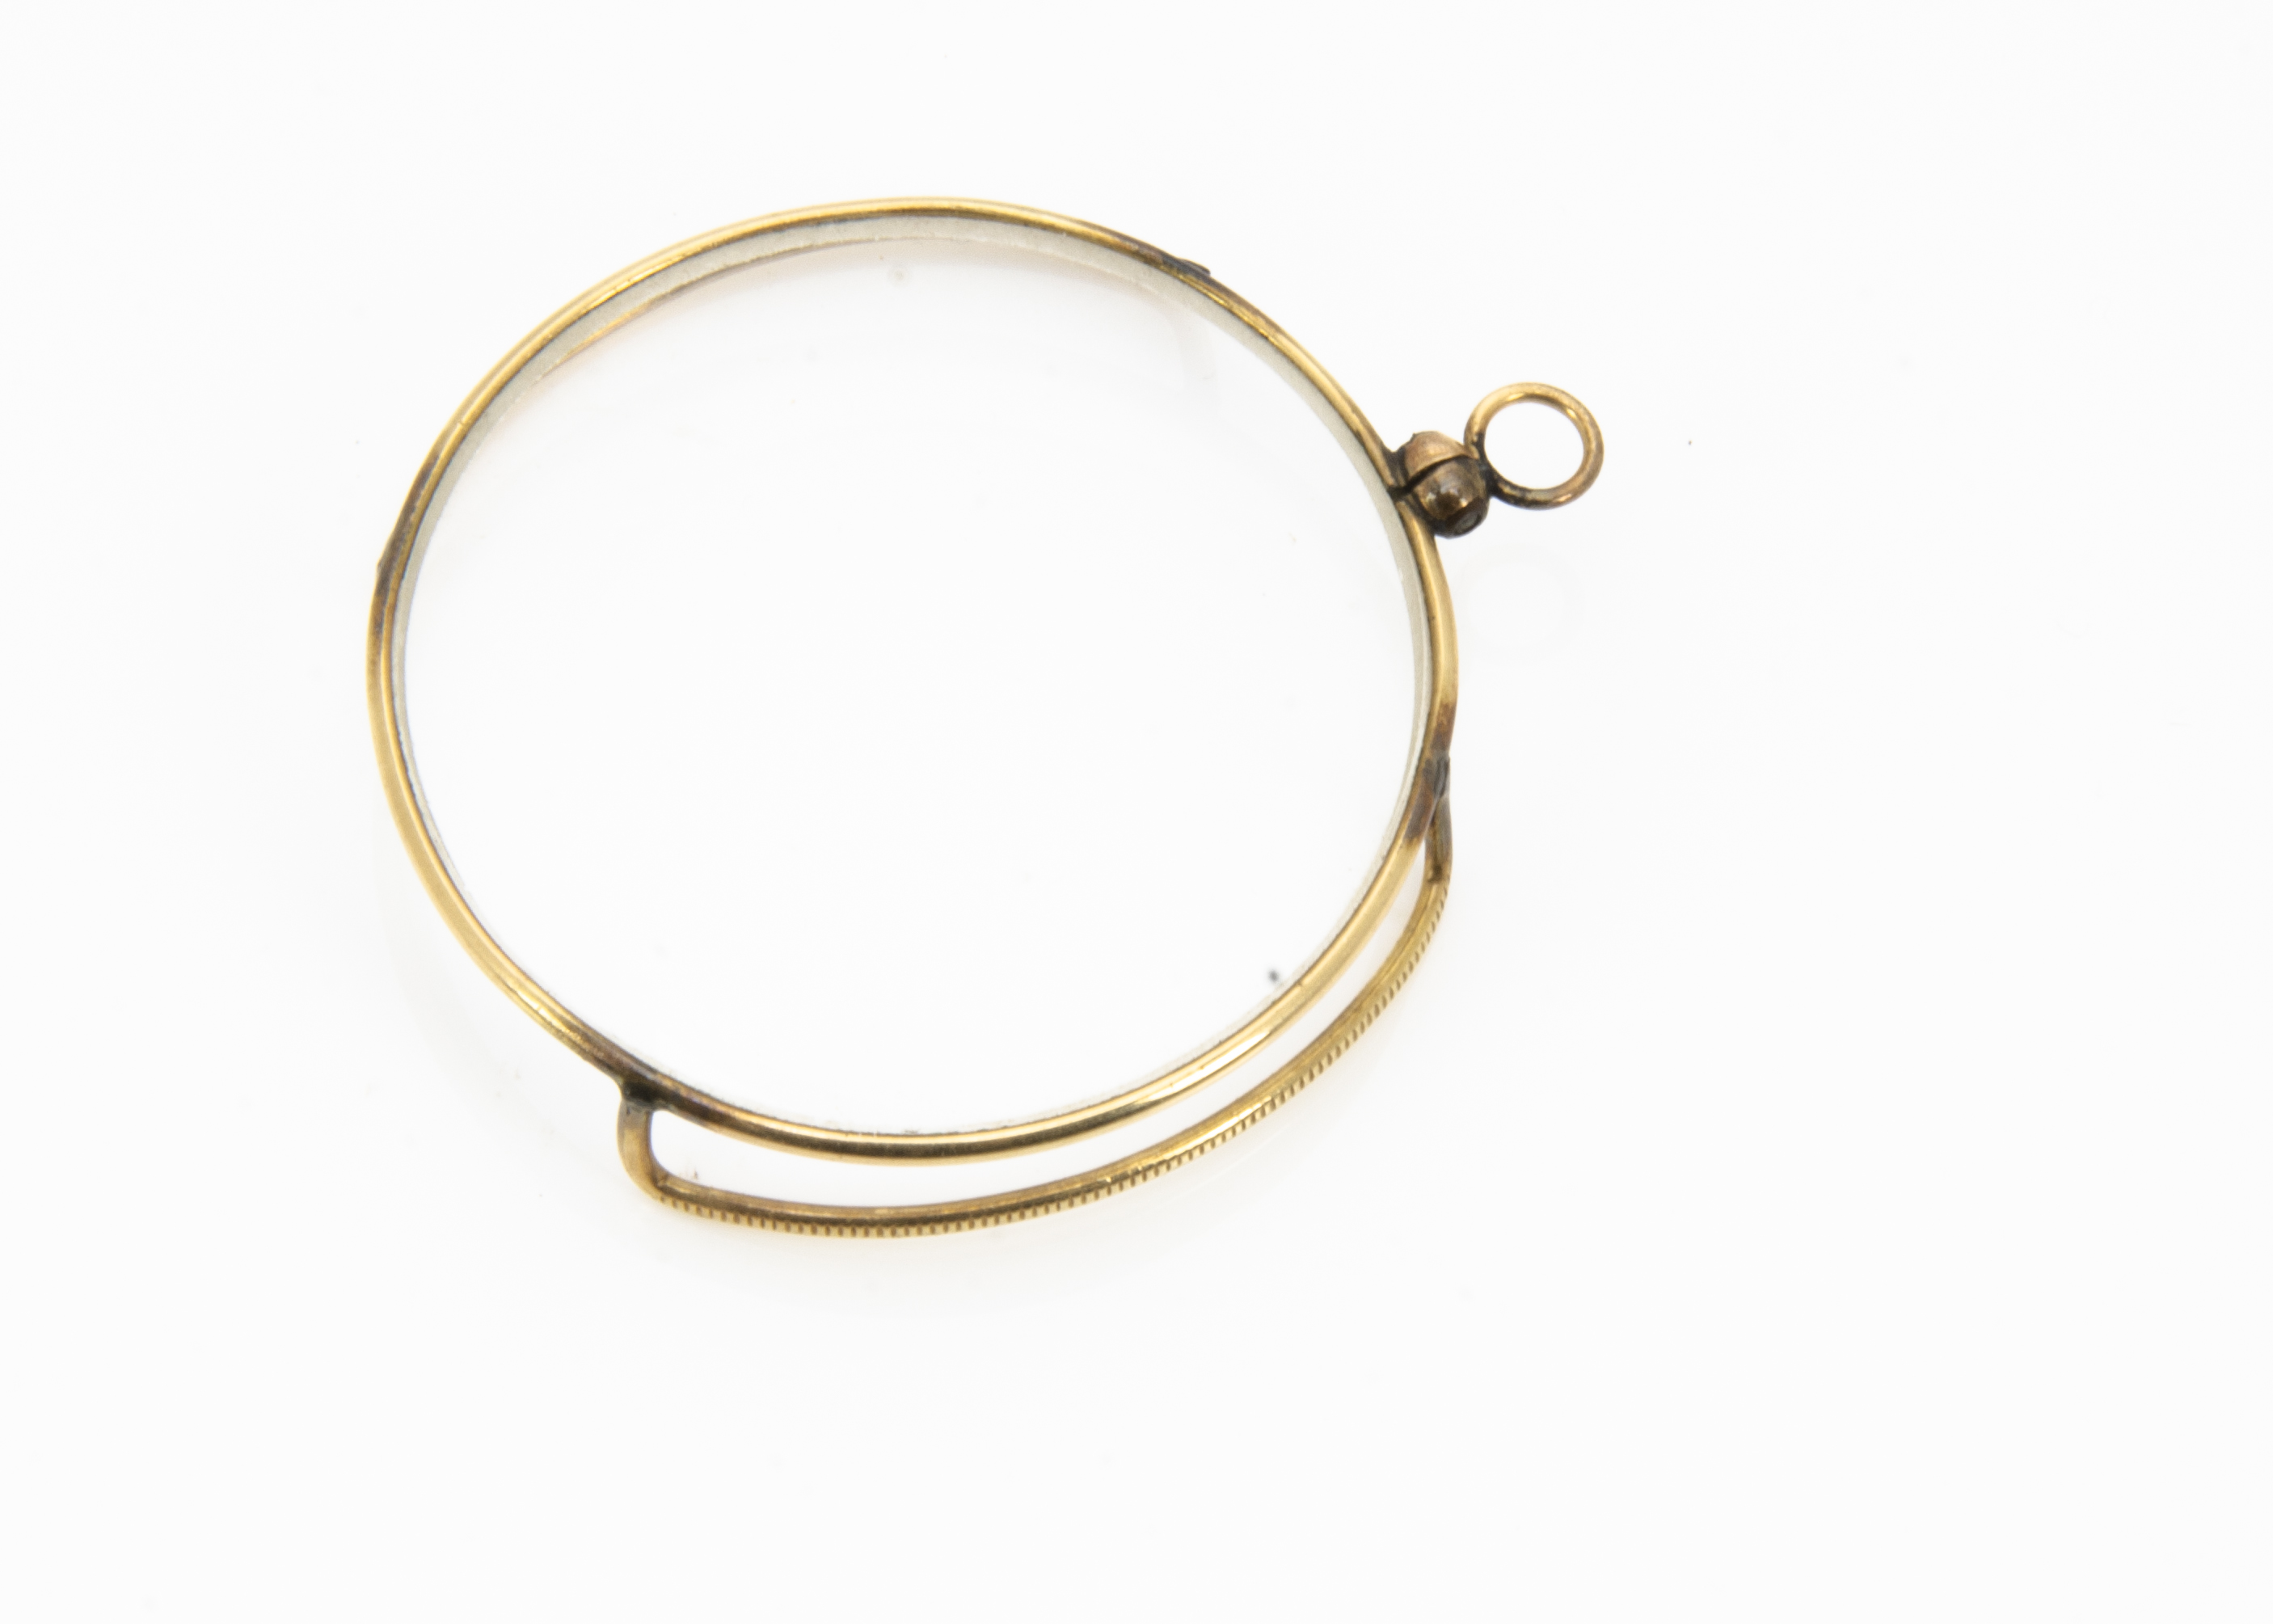 Lot 257 - A yellow metal monocle, the convex glass in a yellow metal frame with hinged loop, 4cm diameter